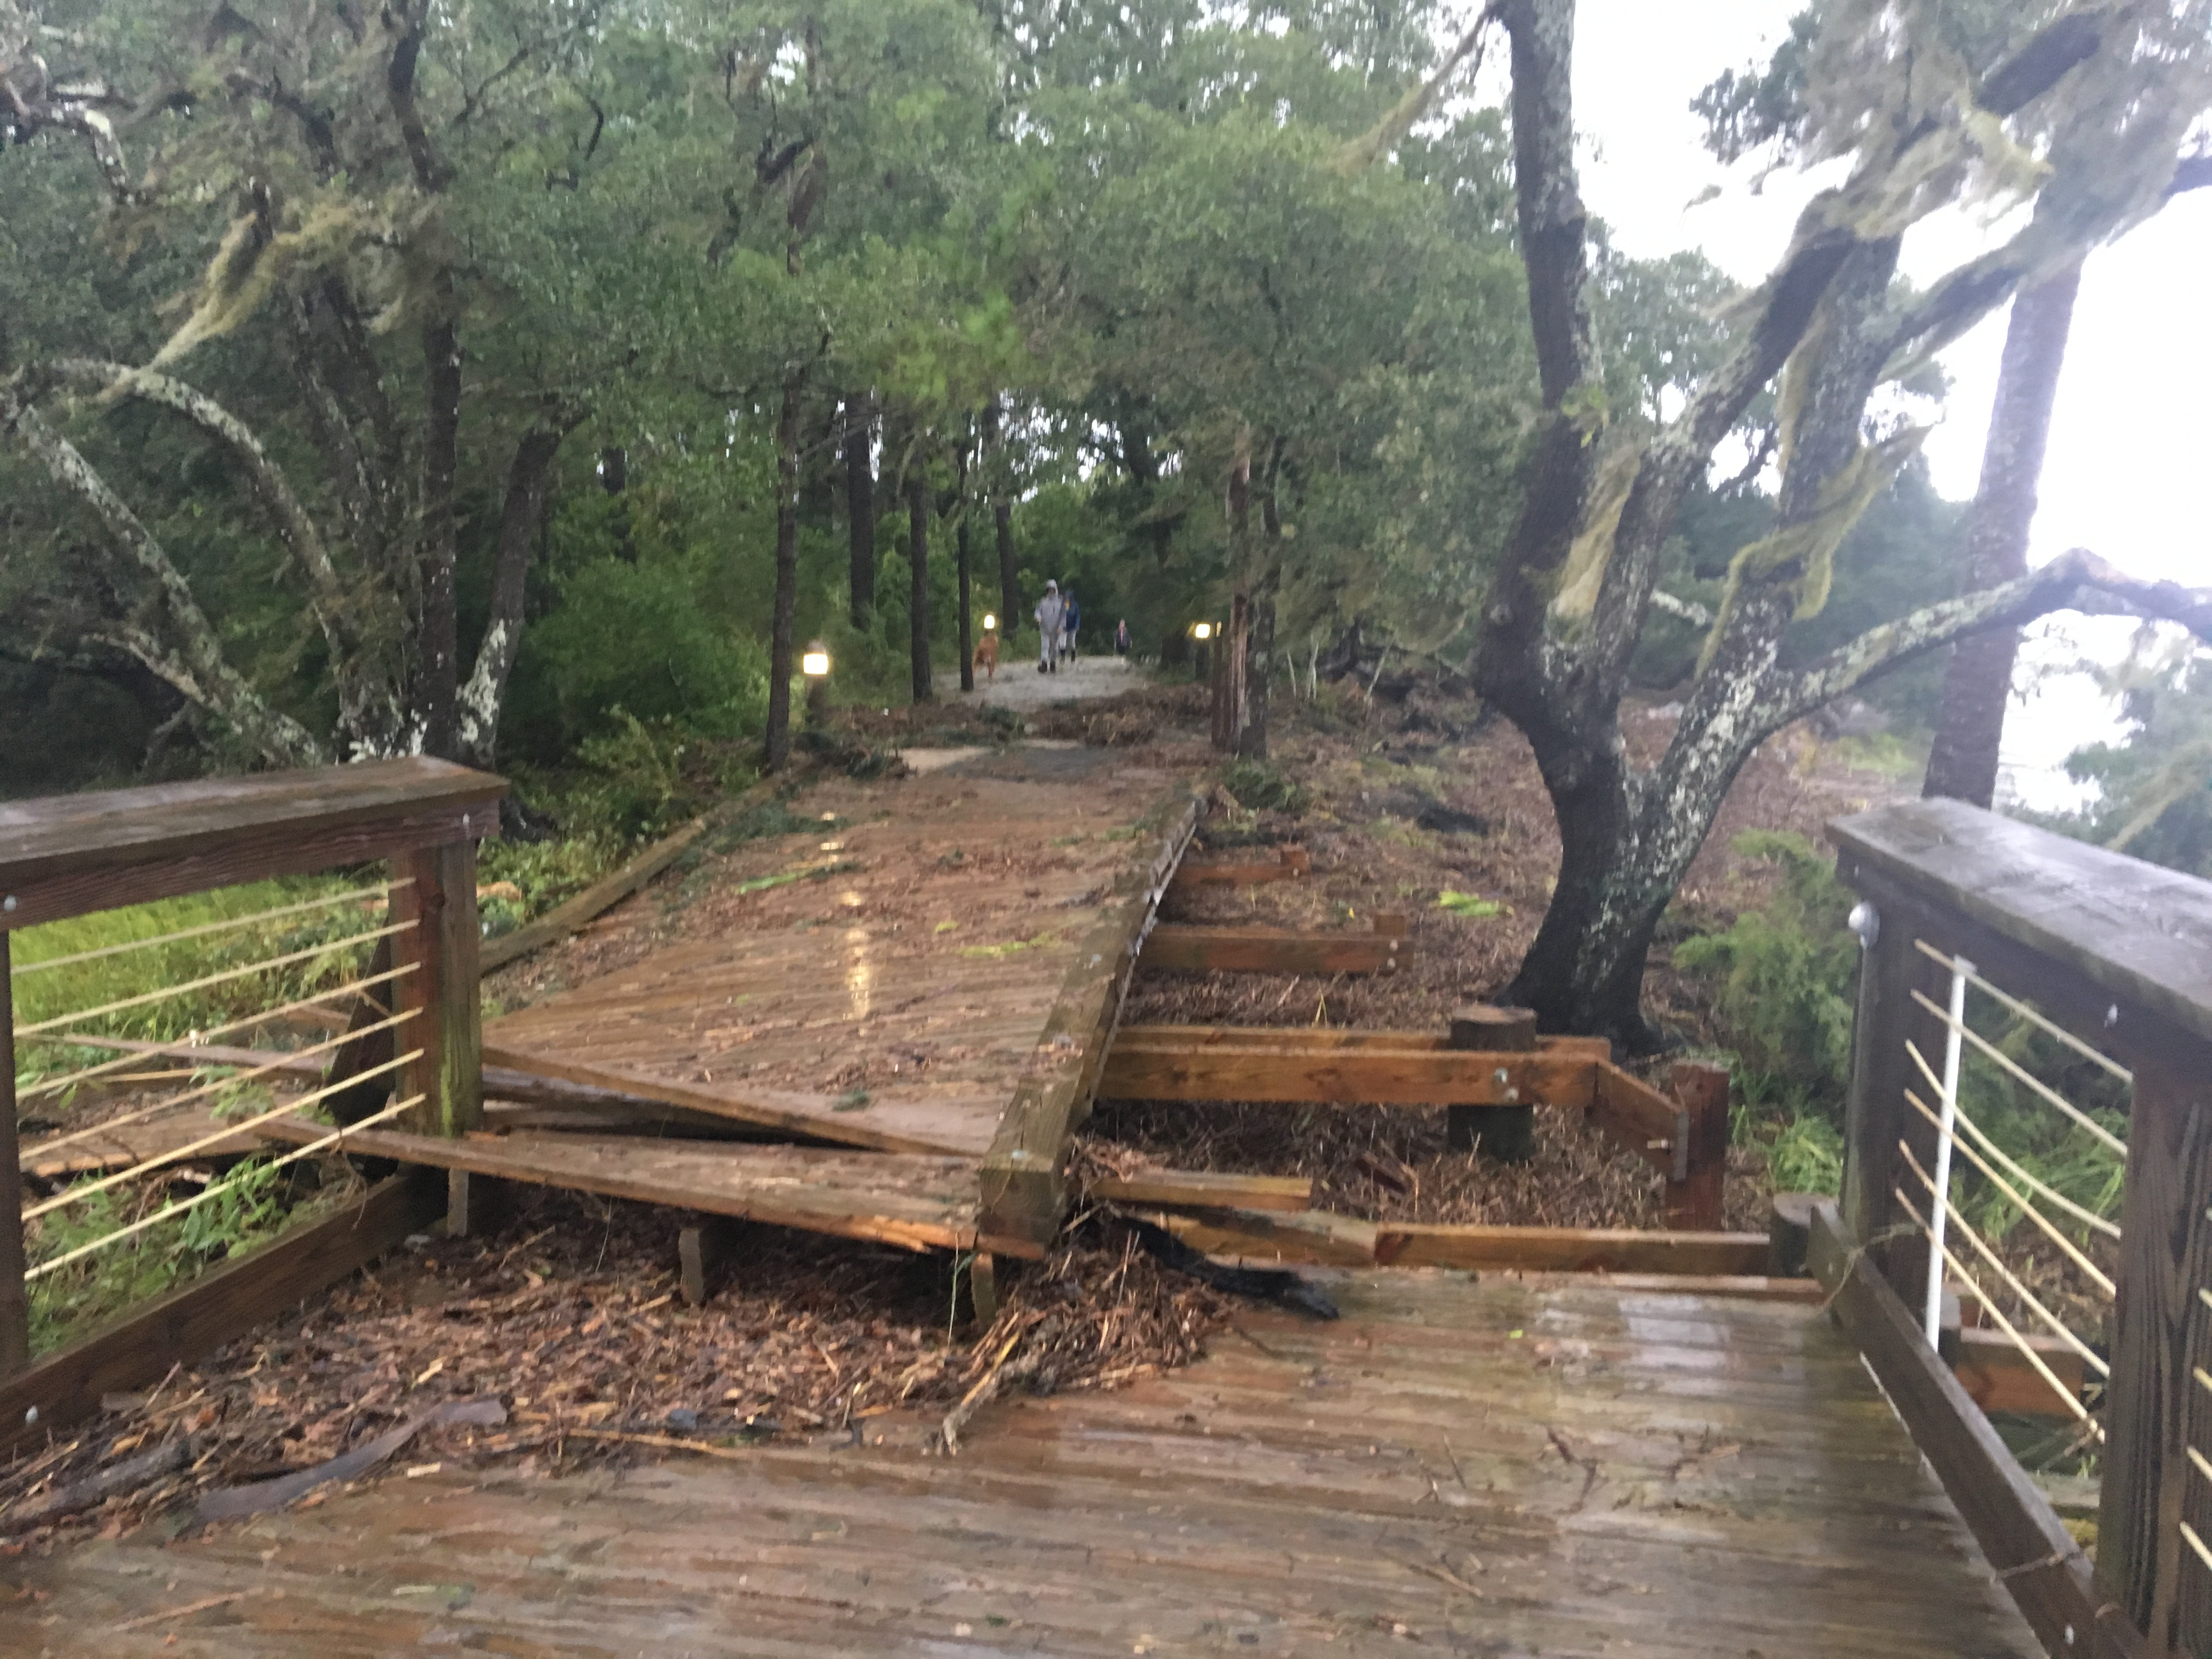 A portion of the boardwalk along the trail near Children's Park is destroyed by a raging tidal surge.